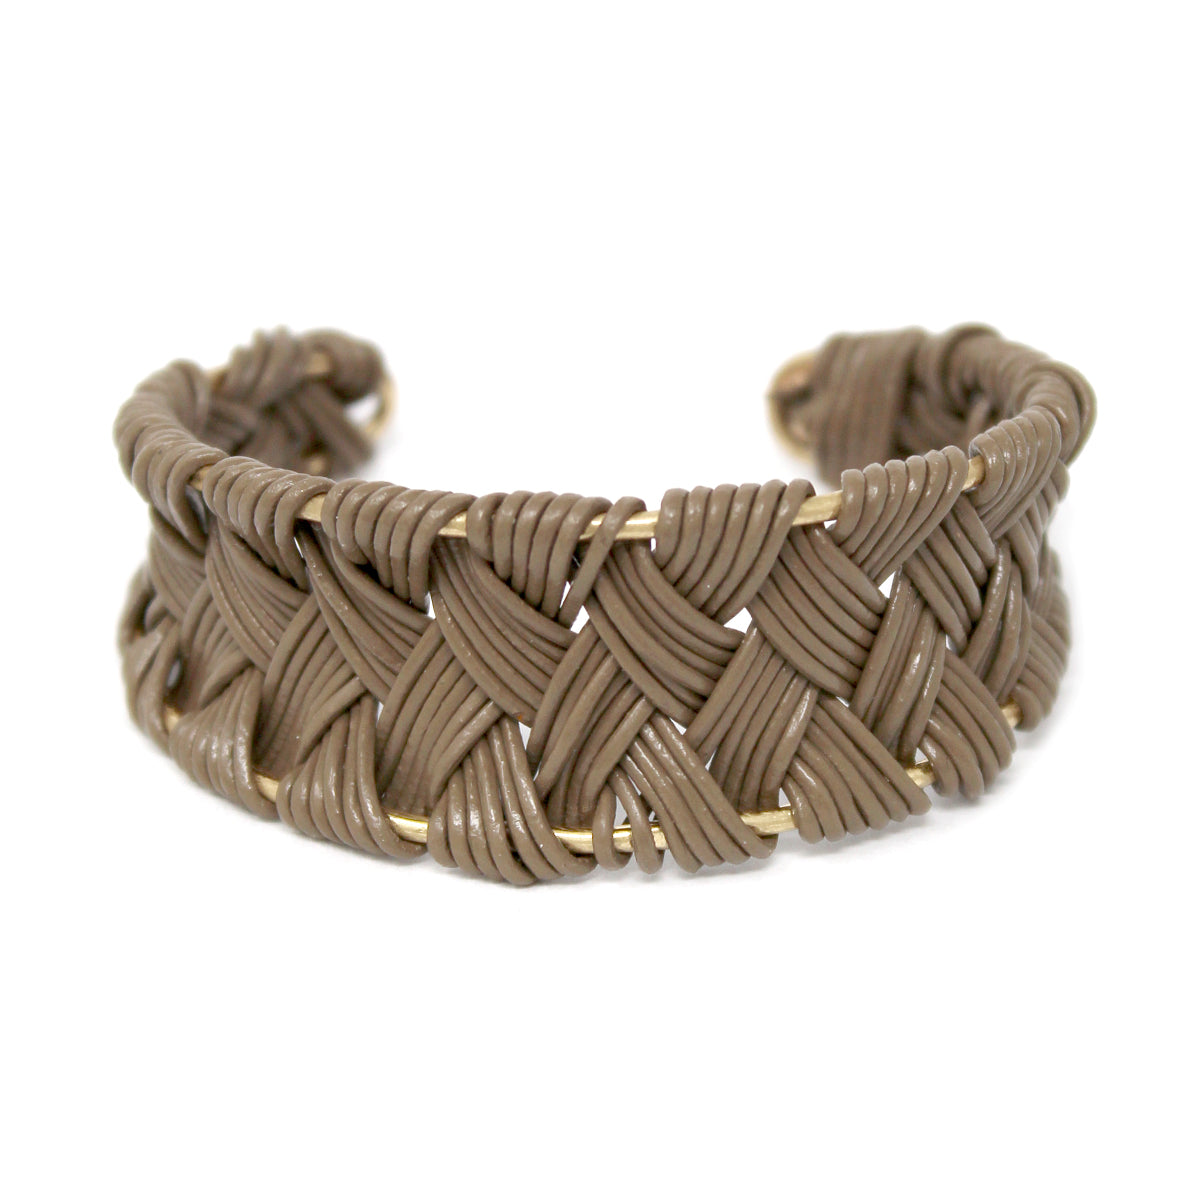 Faux Leather Cord Braided Cuff Bracelet